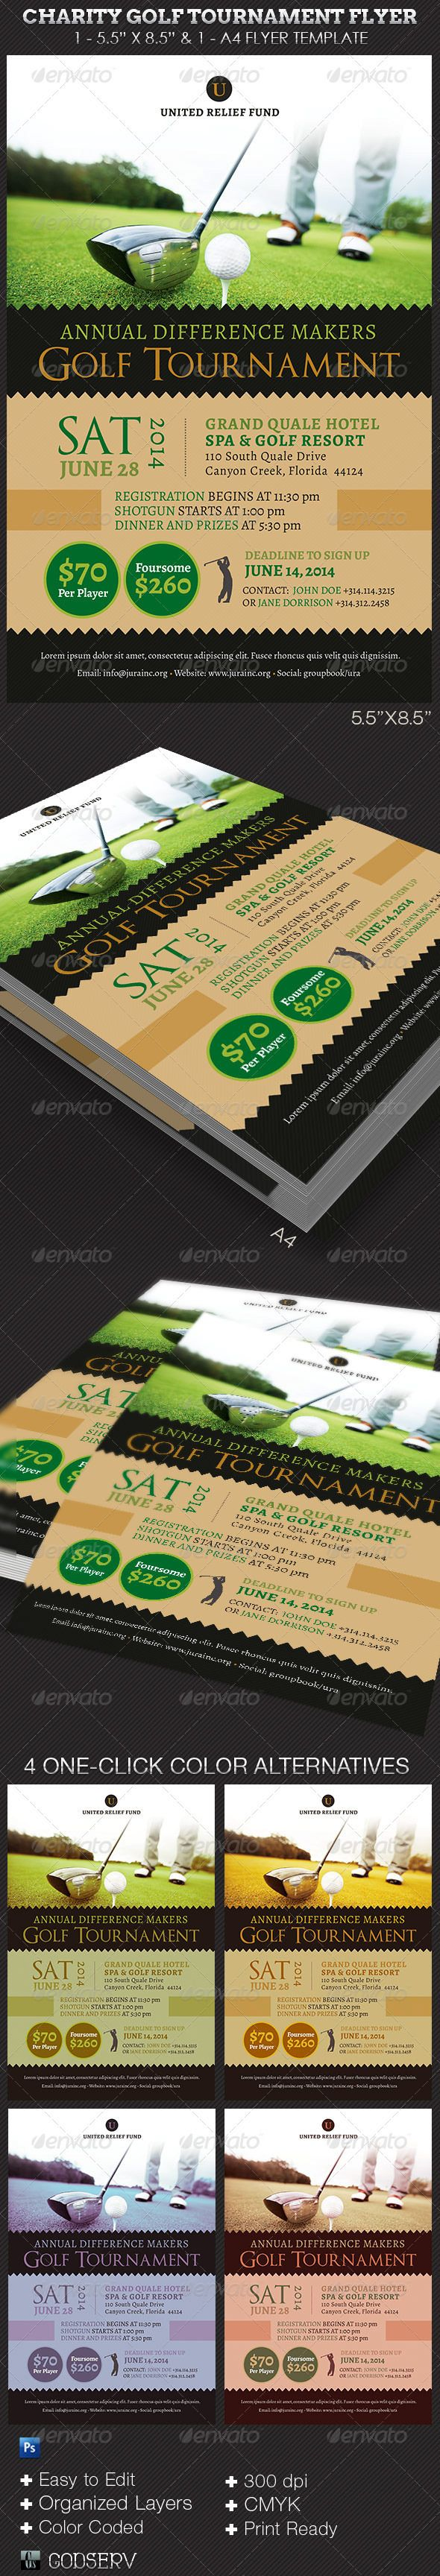 Charity Golf Tournament Flyer Template on Behance